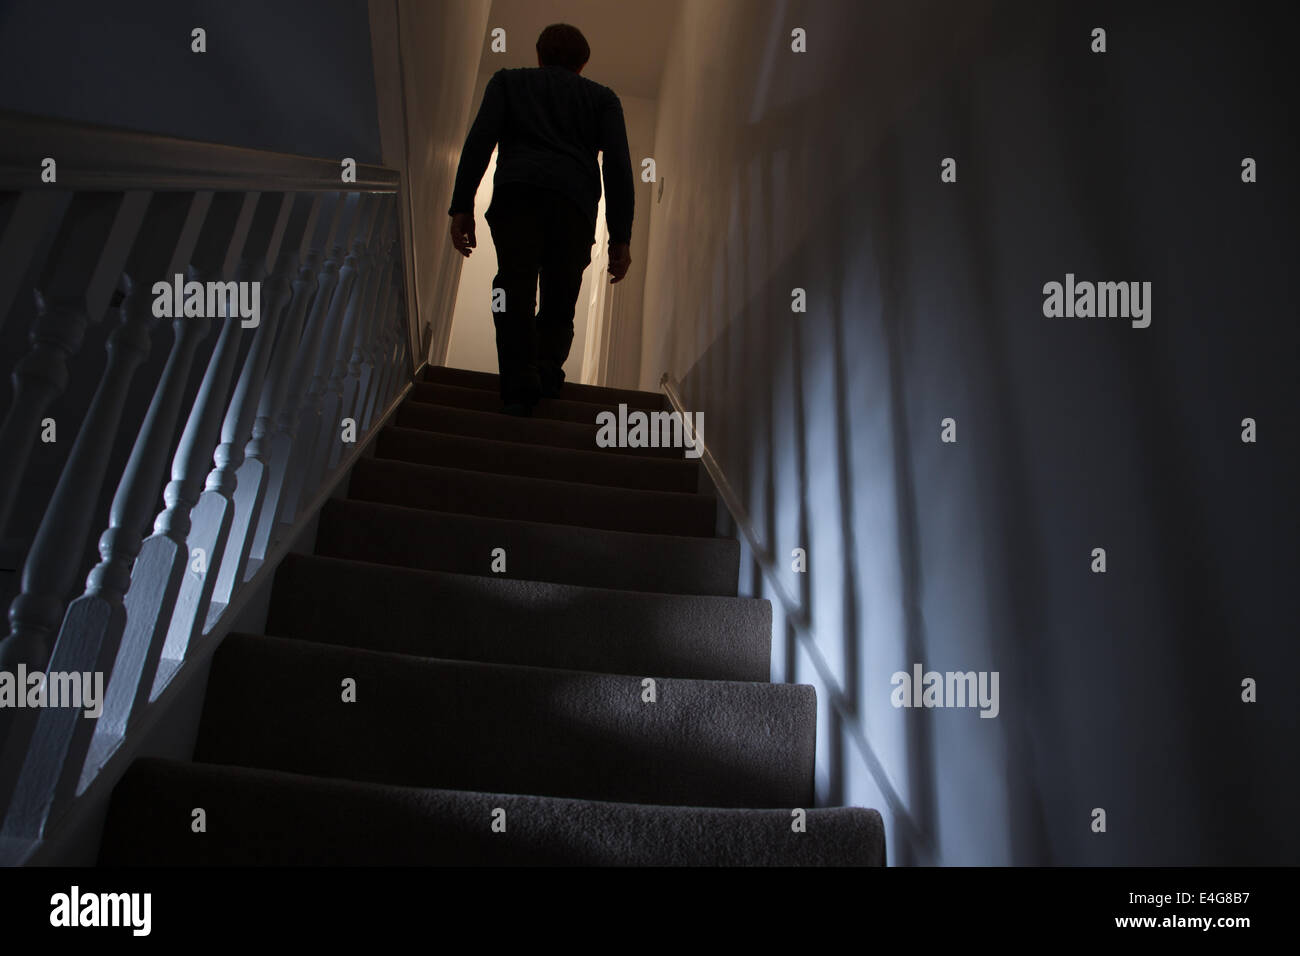 Silhouette of a man walking upstairs back view, shadows cast on the walls from the light below. Stock Photo